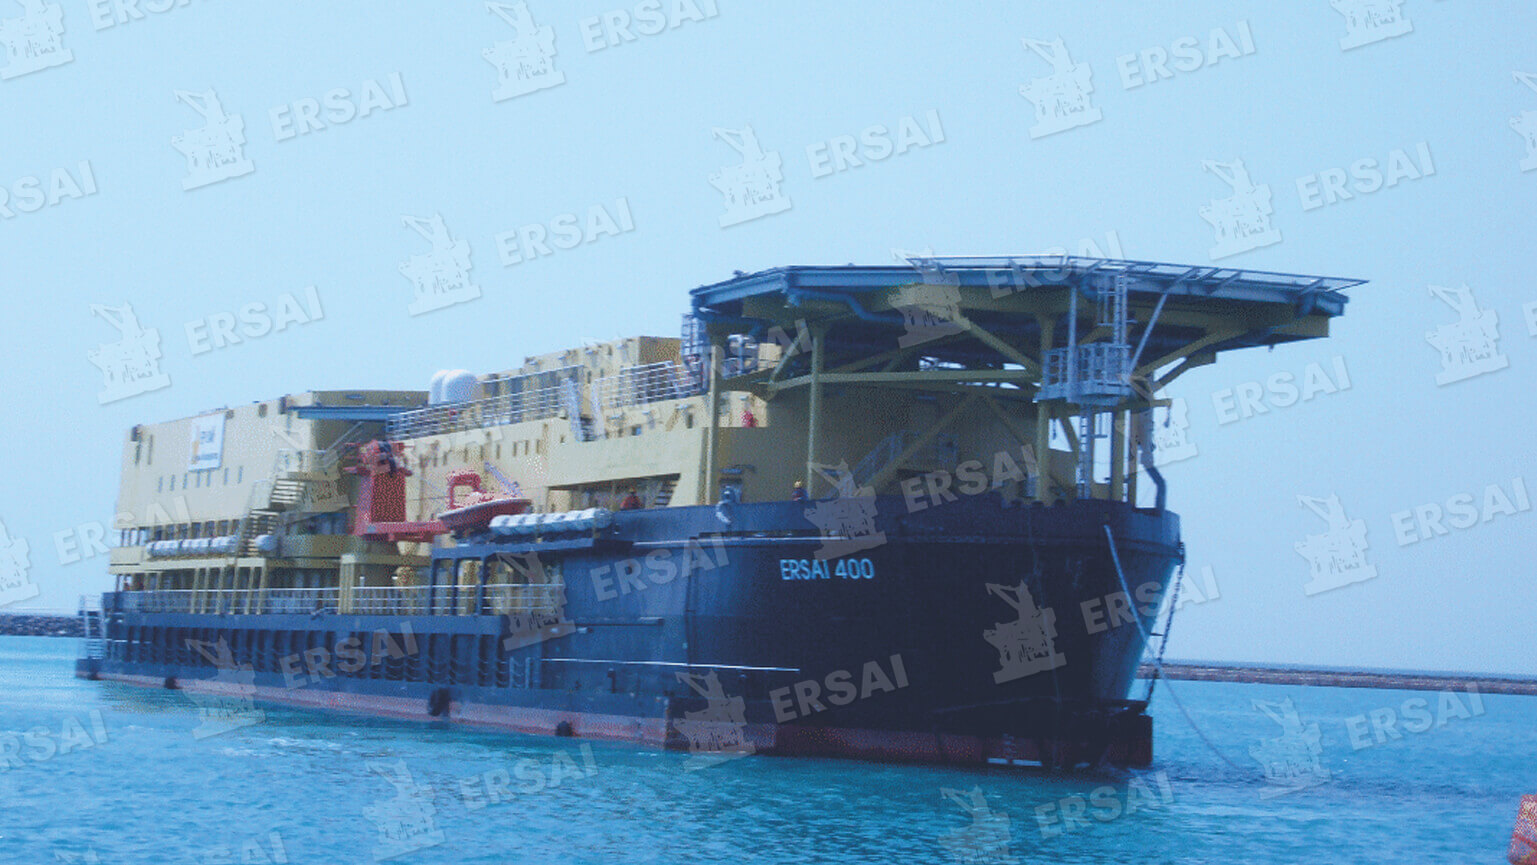 Arrival of ERSAI 400 to ERSAI Yard